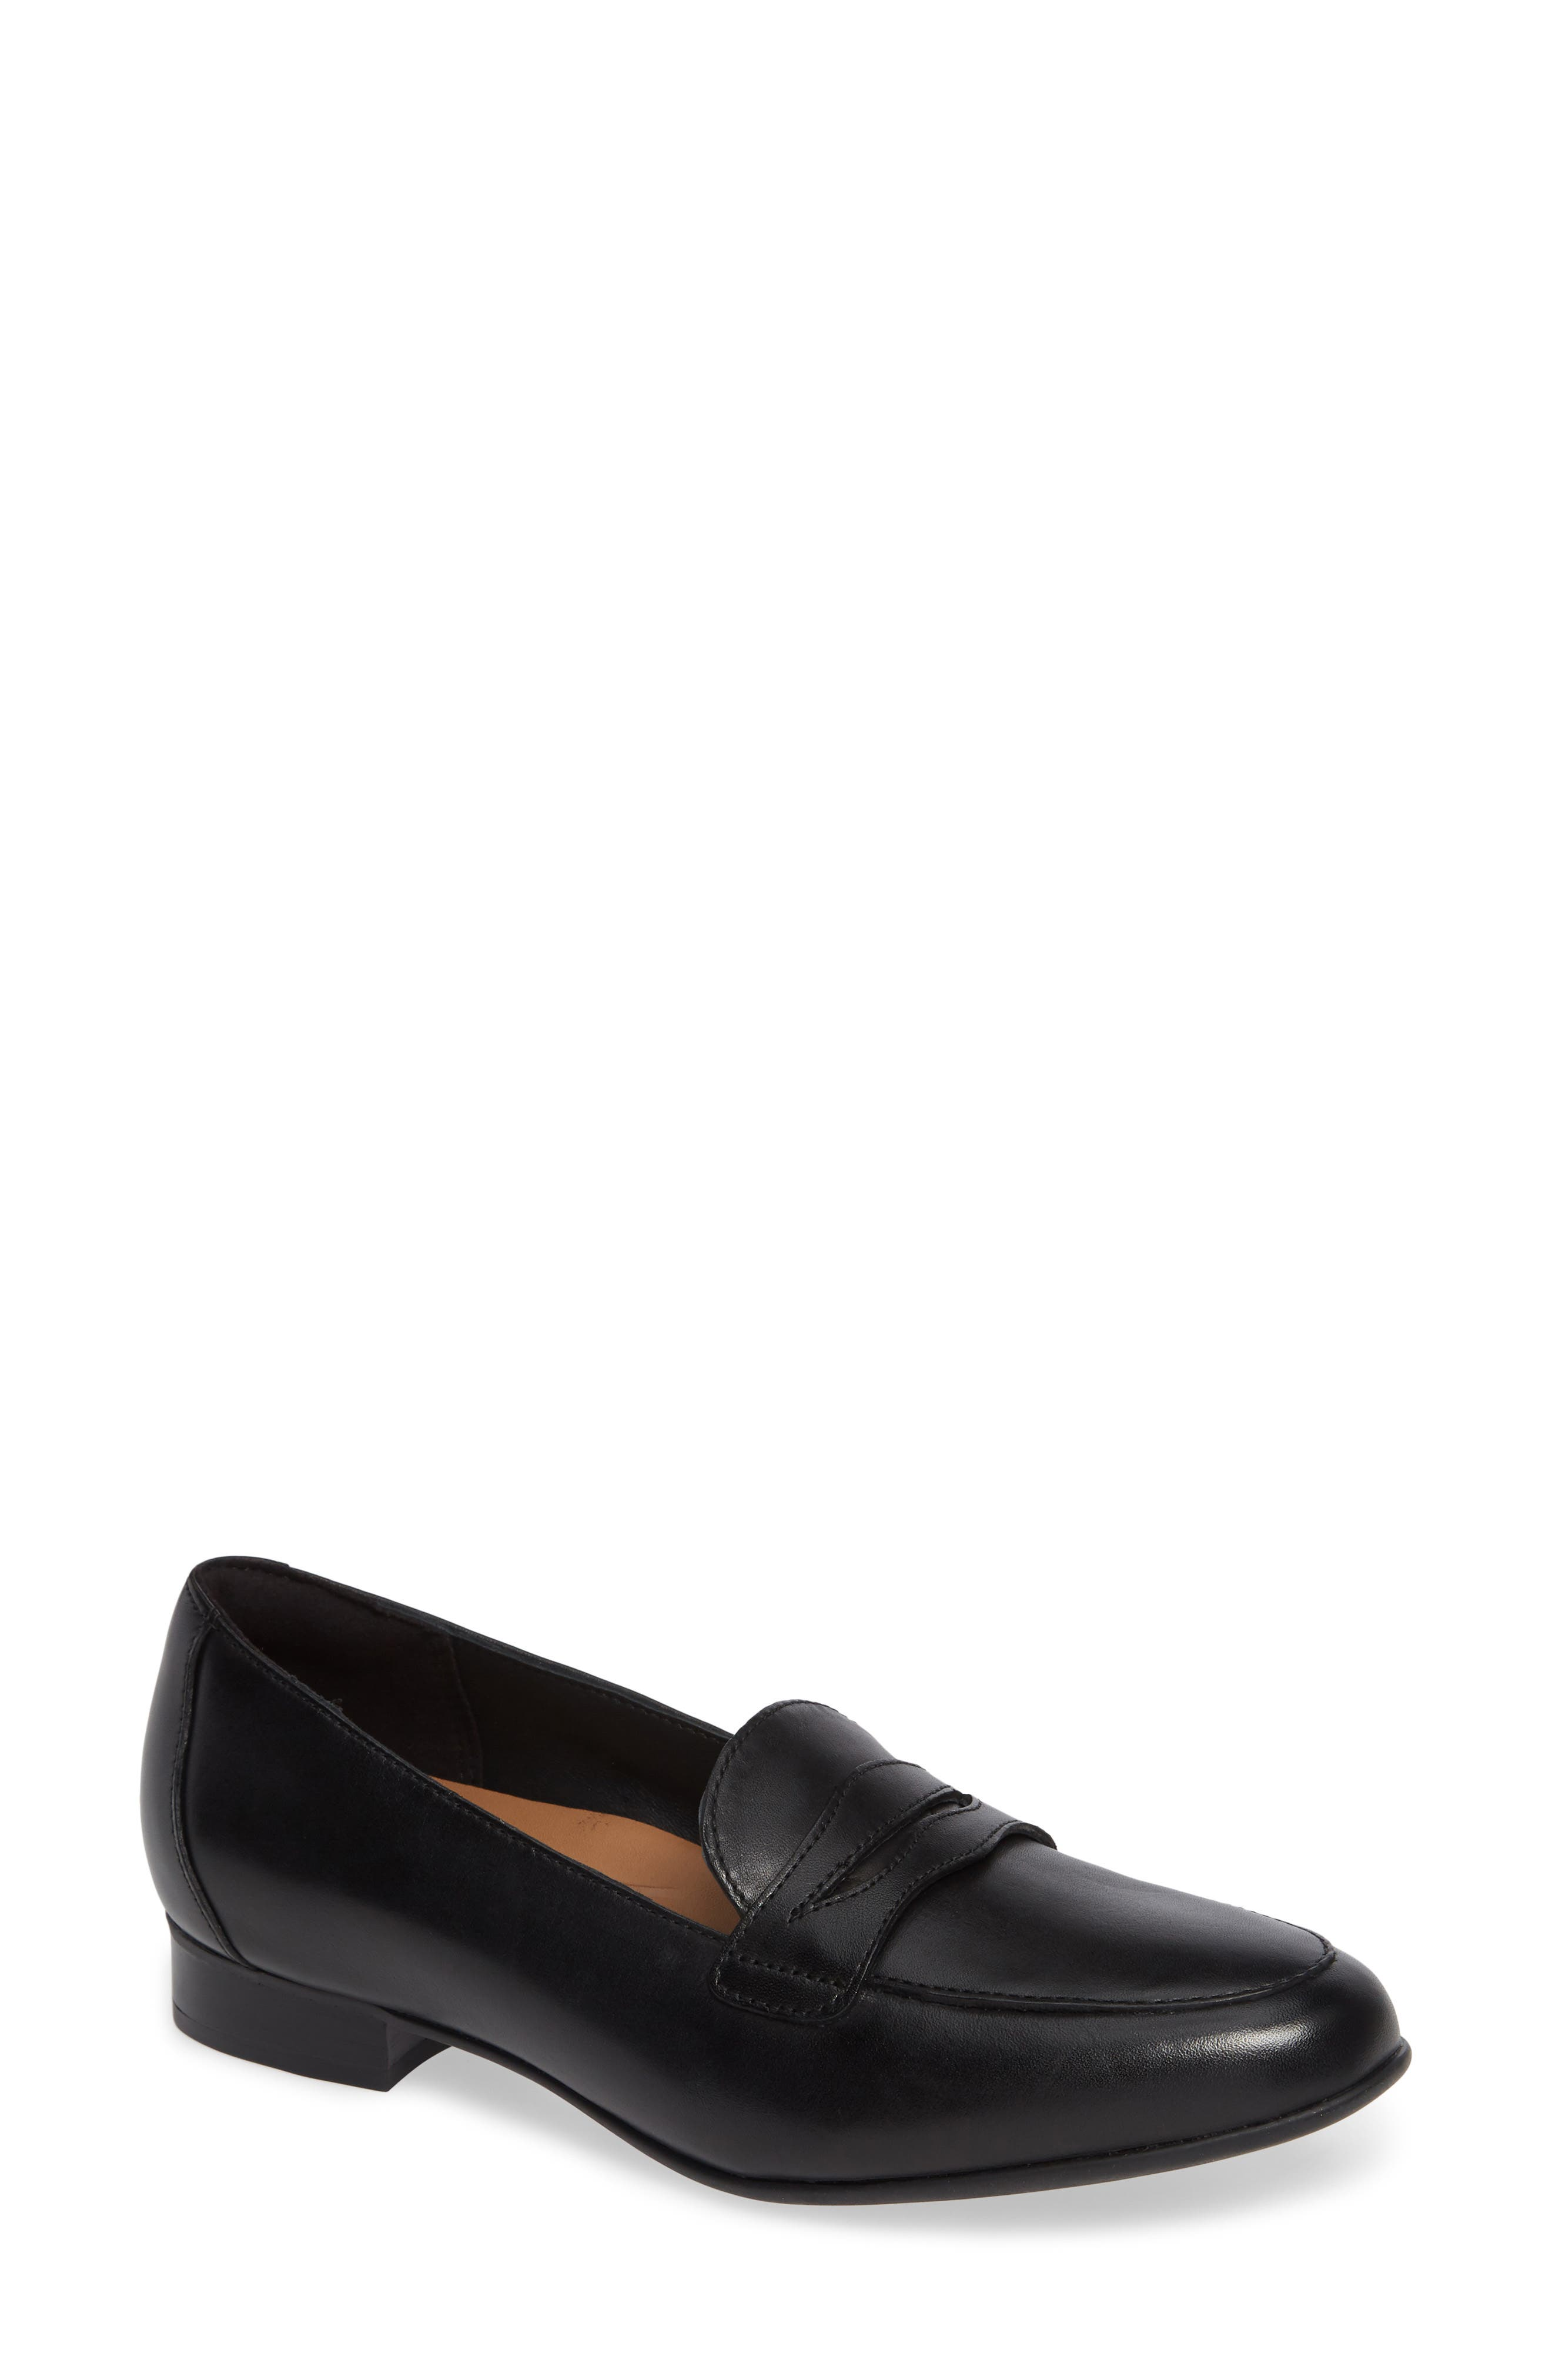 Un Blush Go Penny Loafer,                             Main thumbnail 1, color,                             BLACK LEATHER